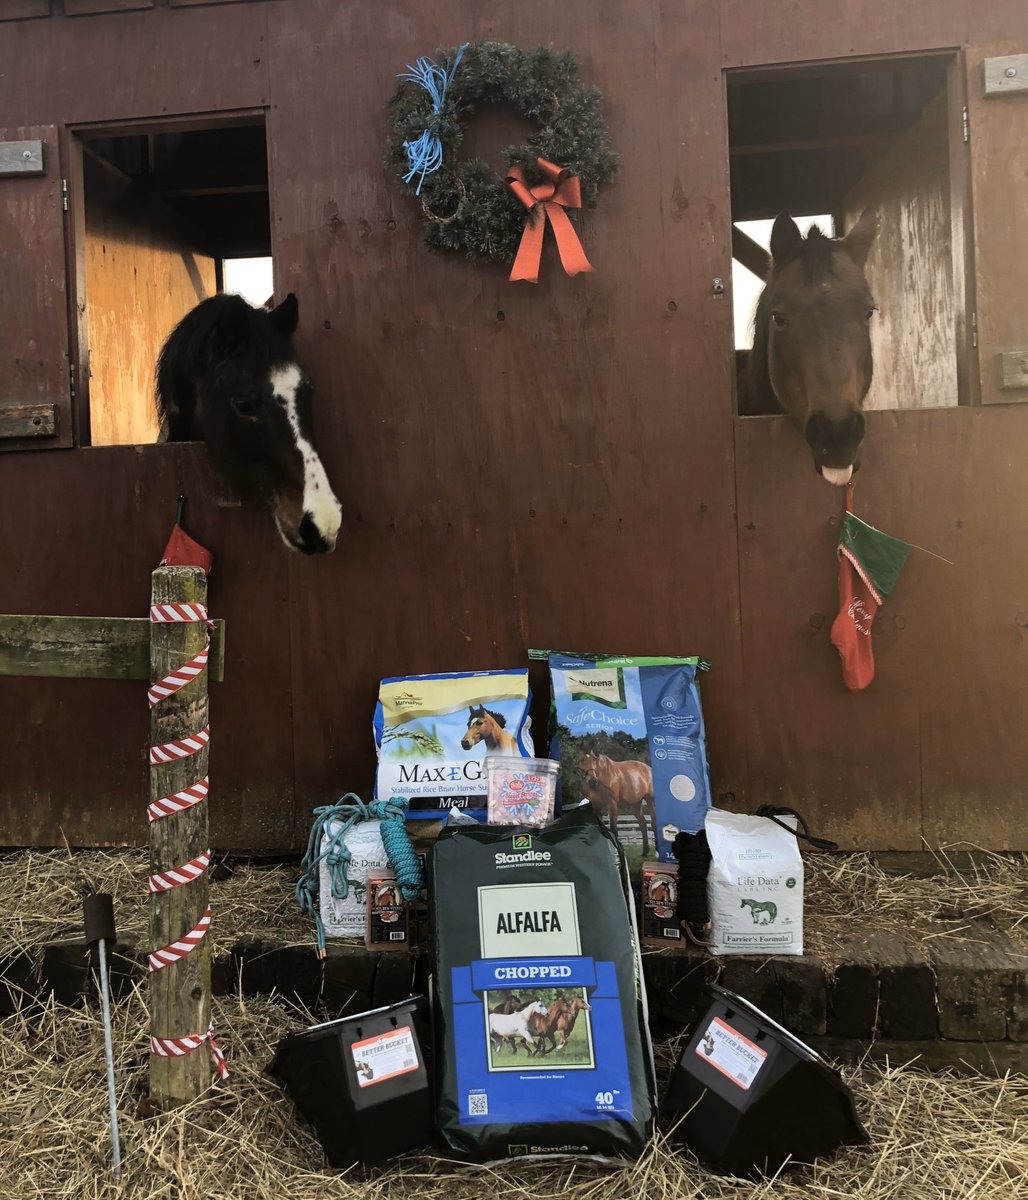 The horses must have been good this year! Father Christmas spoiled them! Does anyone else get their horses Christmas gifts? @StandleeForage @MannaProHorse @NutrenaFeed @LifeDataLabs @AQHA @APHAnews  #ILoveMyHorses #MerryChrismaspic.twitter.com/SFJdR9WUBT